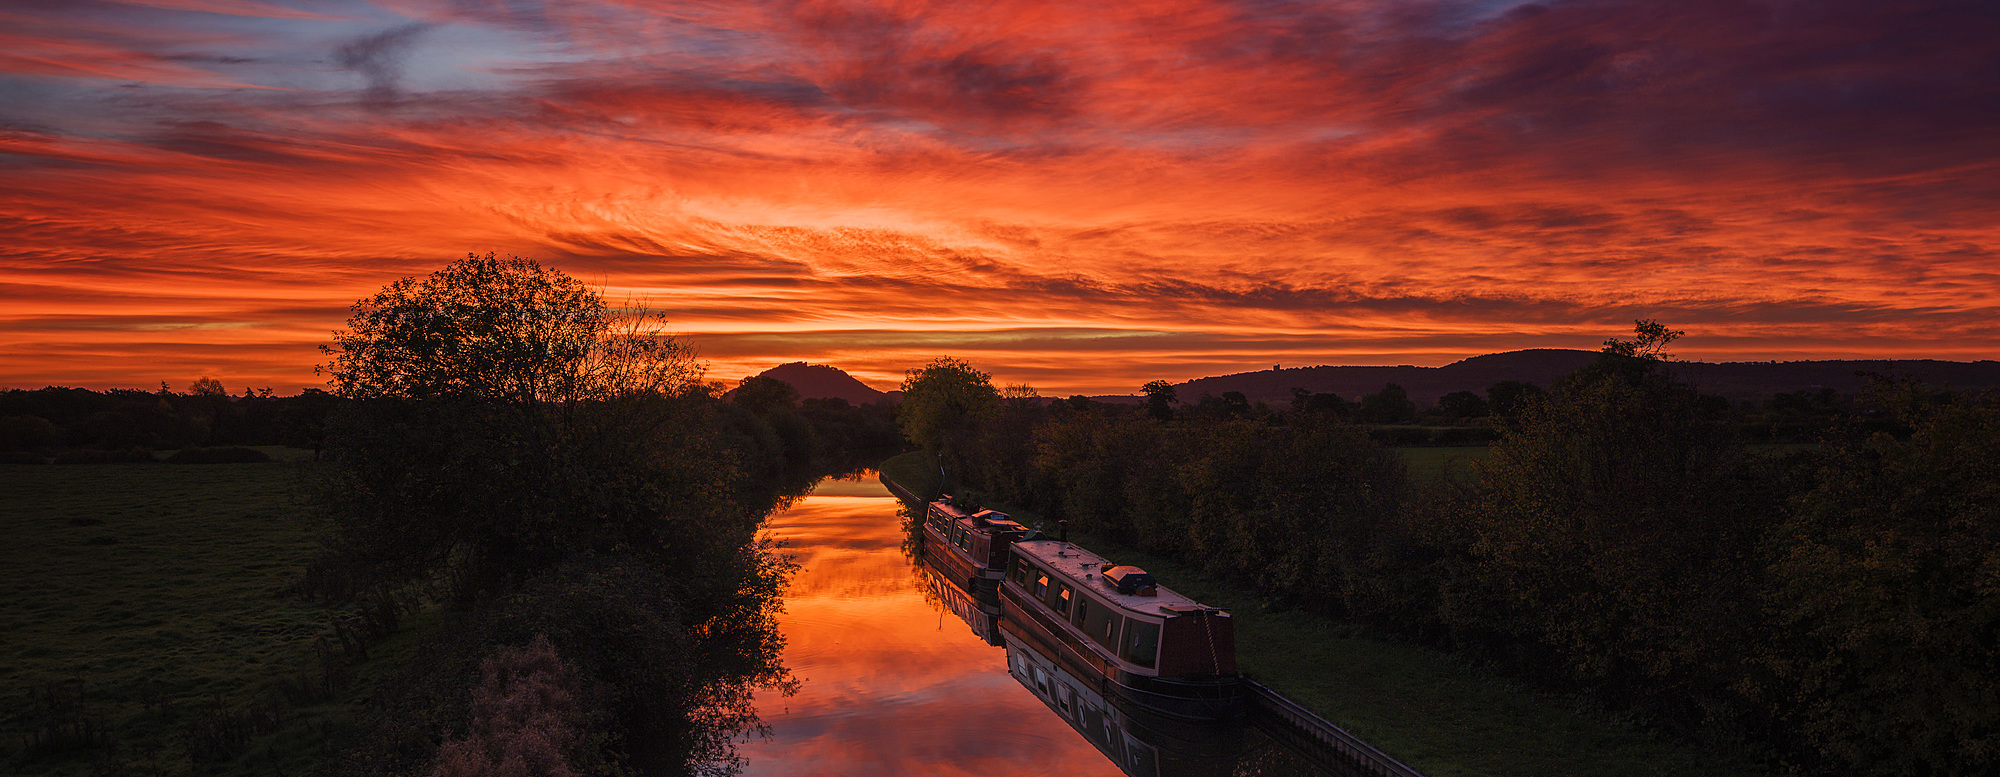 1219-114 ( Garry Ridsdale ) - Barges lay still on the Shropshire Union canal as the dawn light sweeps across the sky above Beeston Castle, Cheshire, England, United Kingdom, Europe